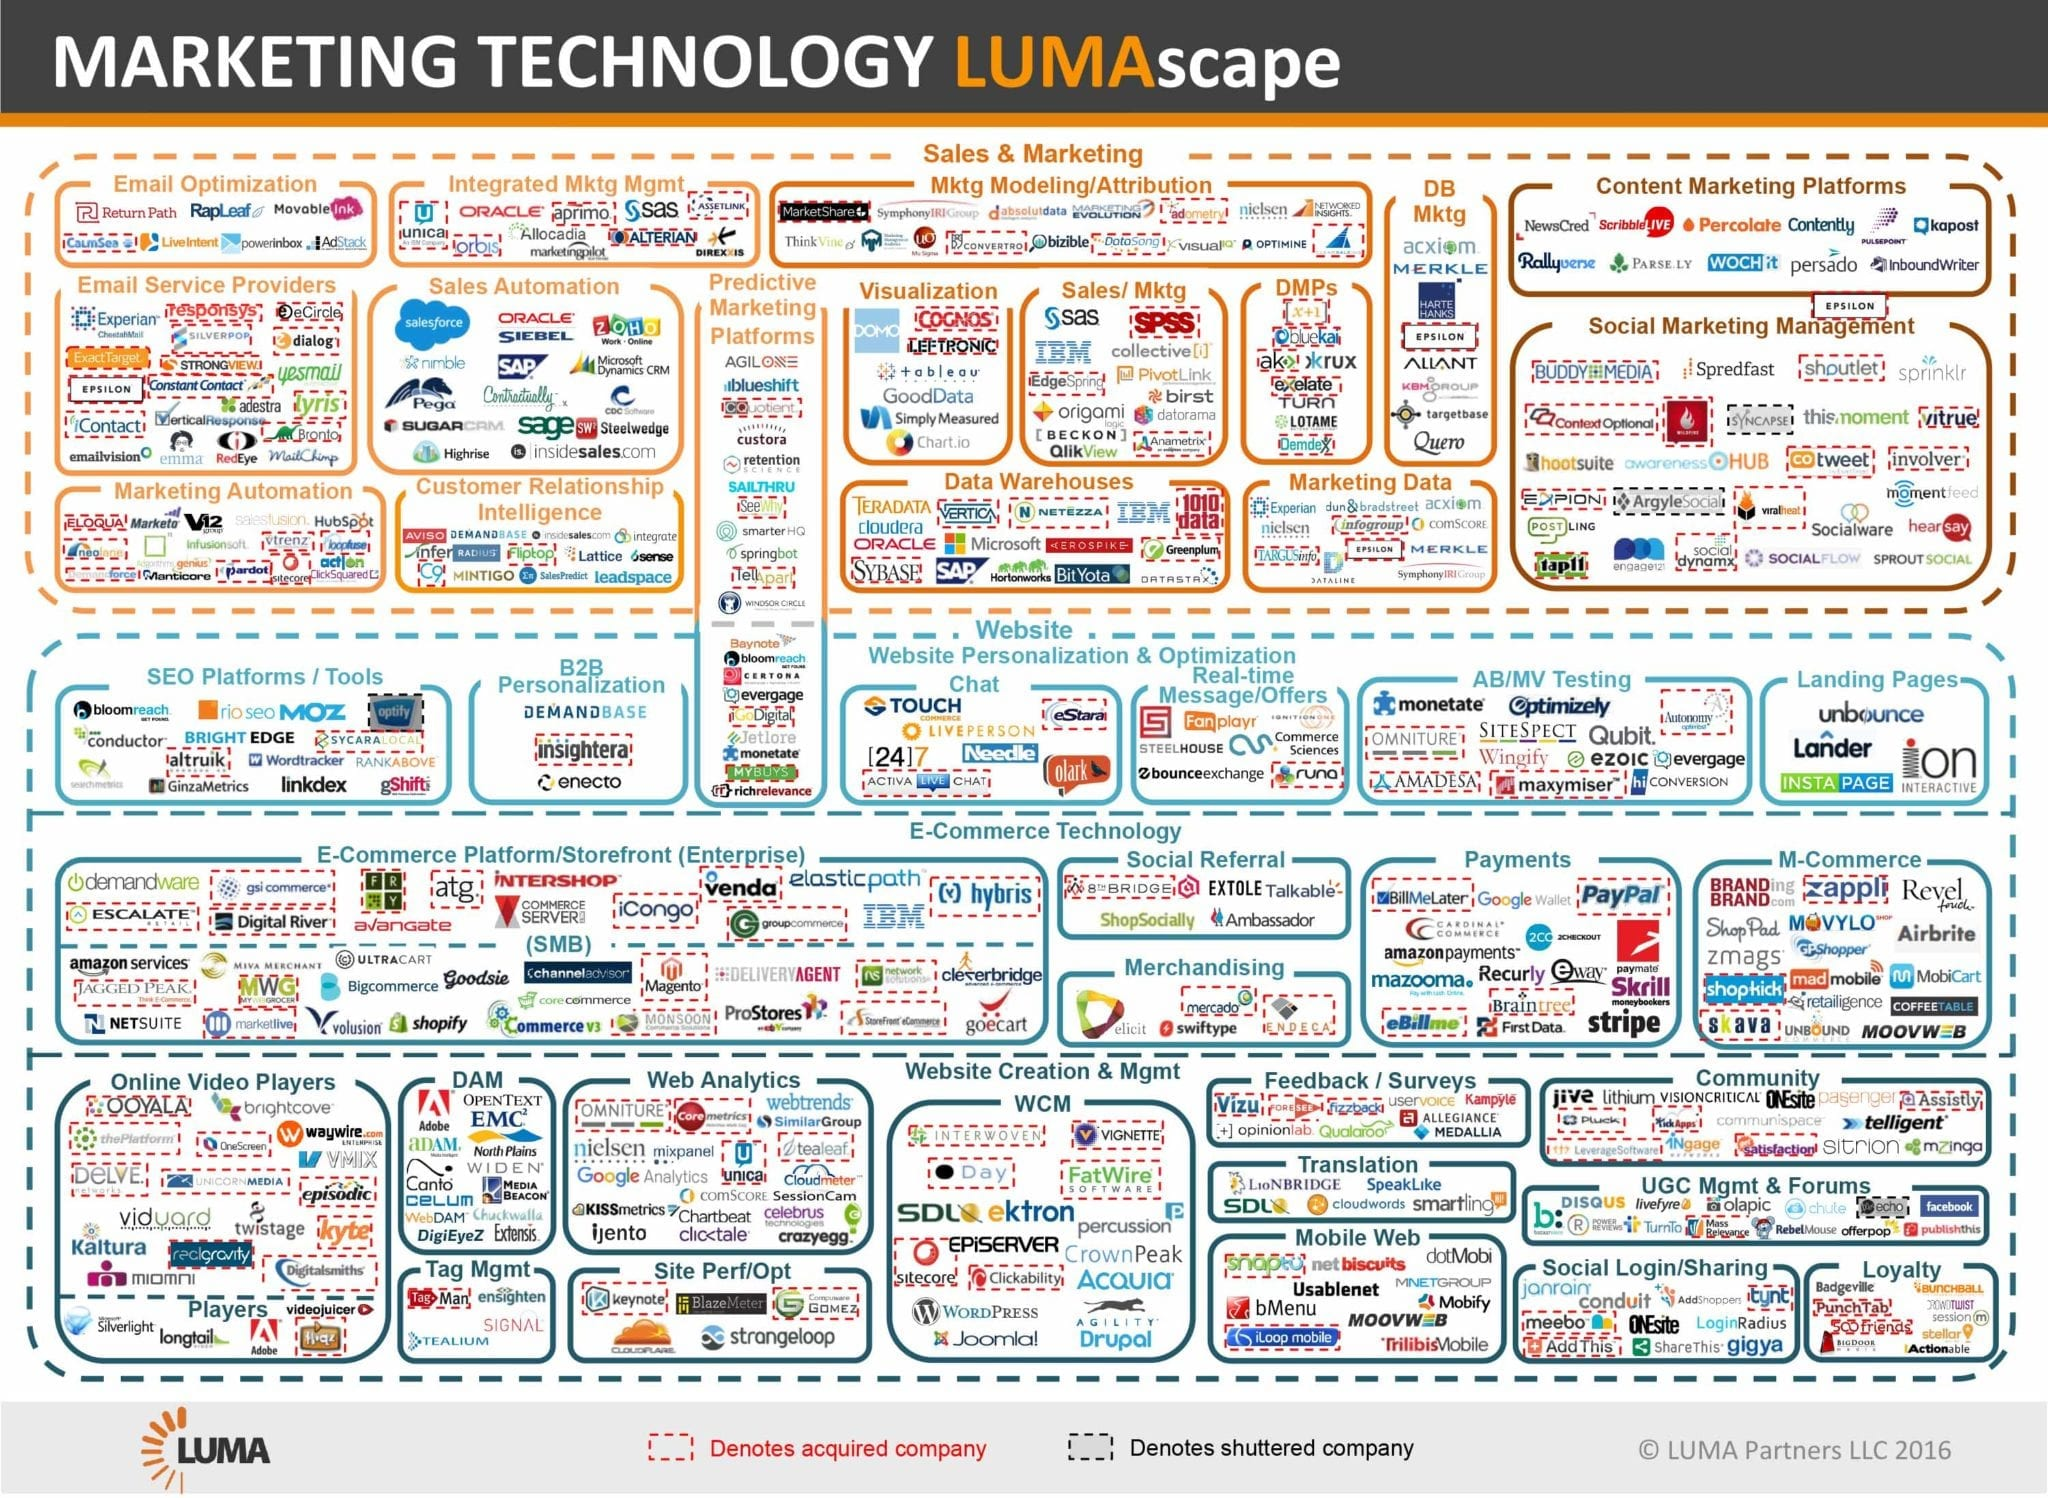 lumascape - marketing intelligence